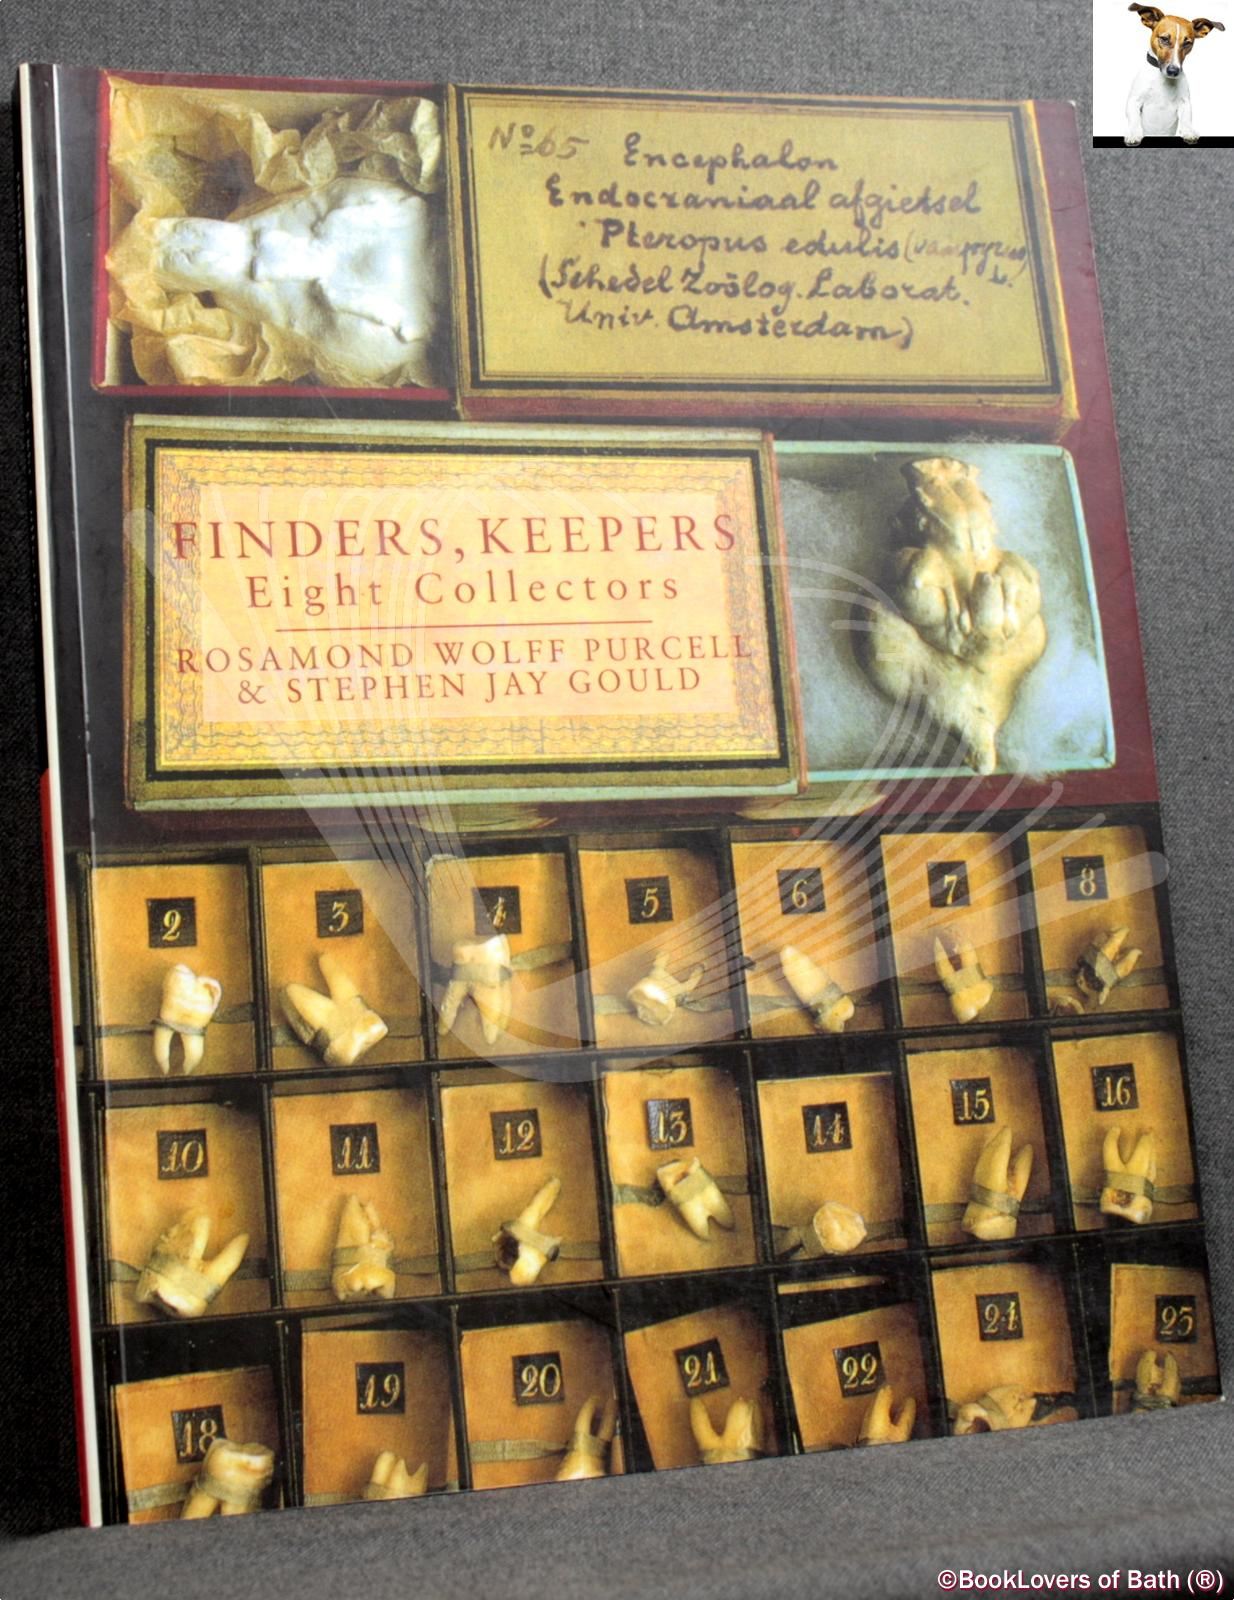 Finders, Keepers: Eight Collectors - Rosamond Wolff Purcell & Stephen Jay Gould